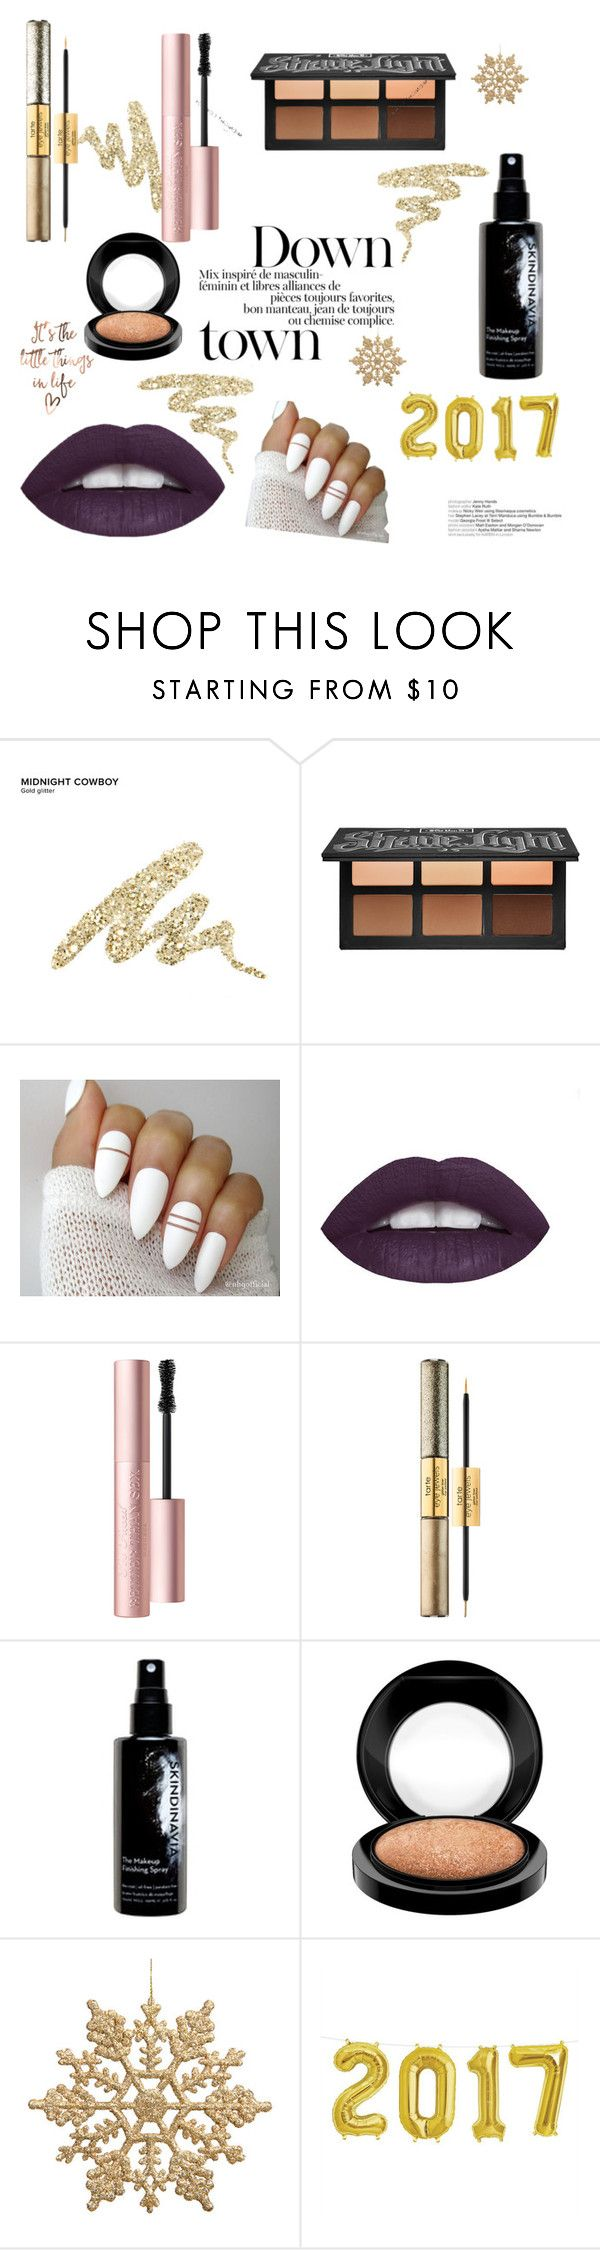 """Gold Deposit '17"" by ronisha-lenora ❤ liked on Polyvore featuring beauty, Urban Decay, Kat Von D, Too Faced Cosmetics, tarte, Skindinavia and MAC Cosmetics"